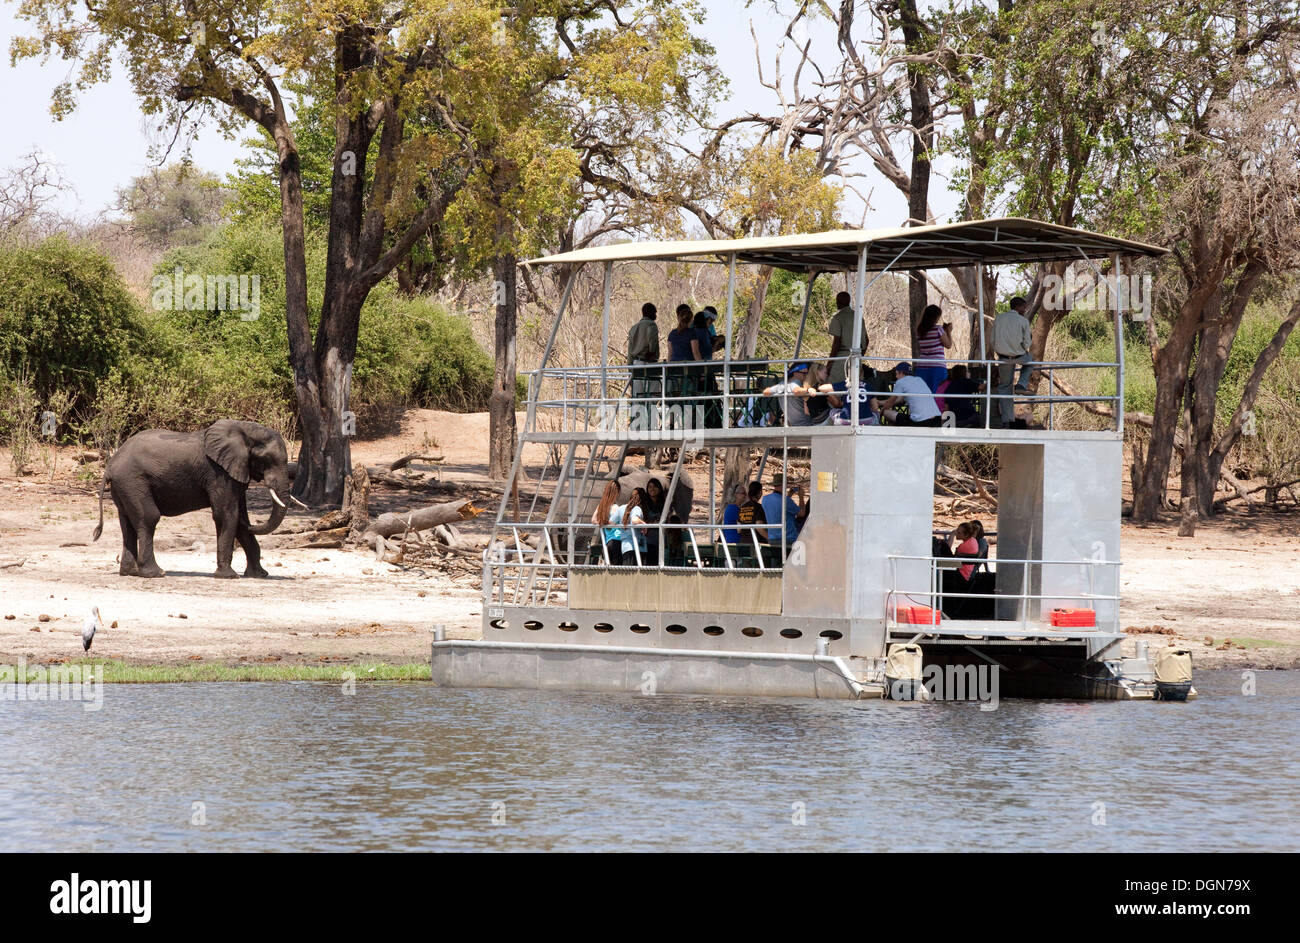 Chobe river cruise - a safari boat and african elephant, Chobe national park, Botswana, Africa - Stock Image